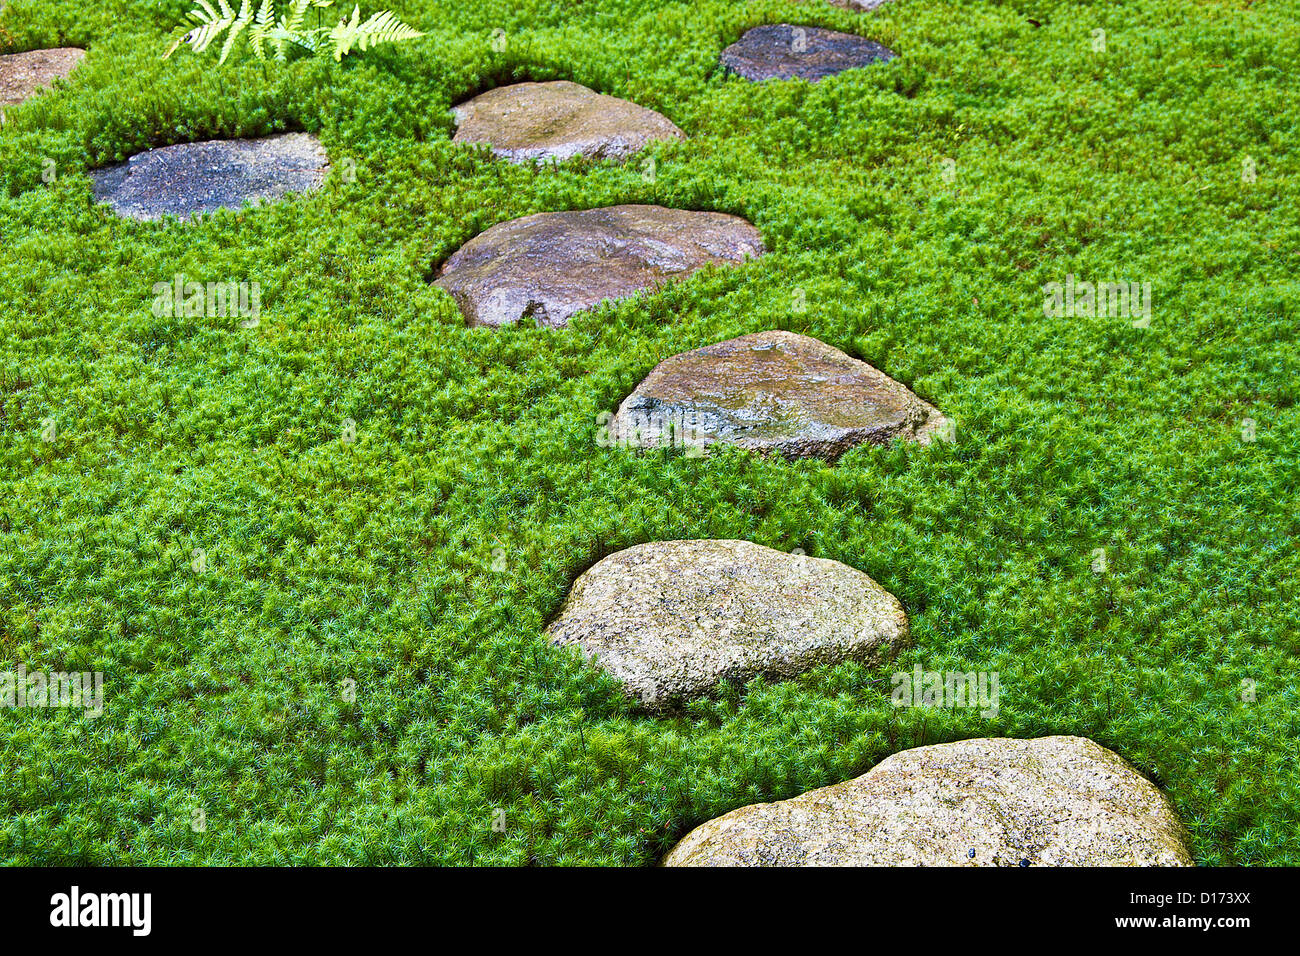 Stepping Stone For Garden Stepping stones garden stock photos stepping stones garden stock stepping stones in traditional japanese garden takayama gifu prefecture stock image workwithnaturefo